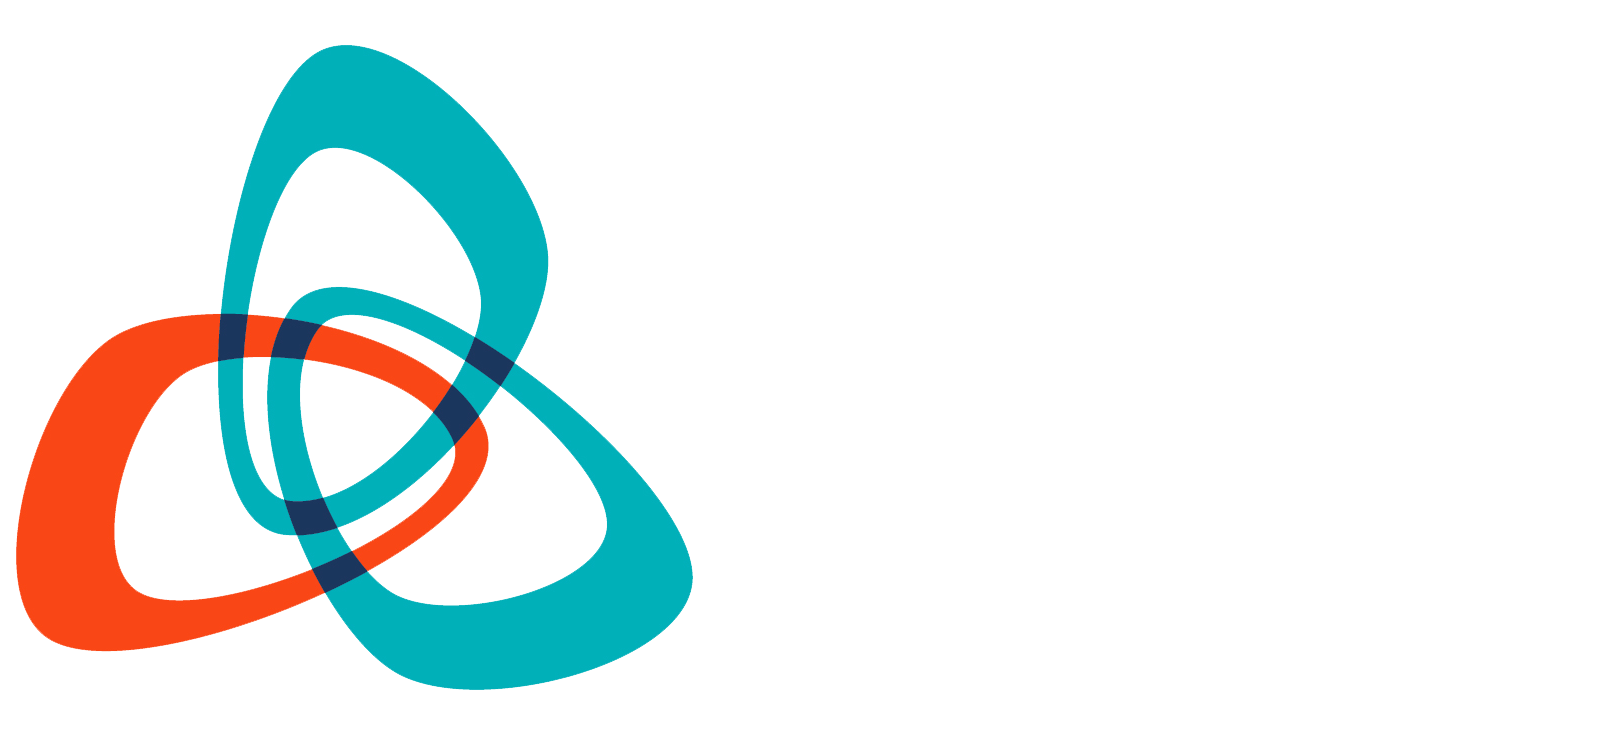 Edgars Creek Secondary College